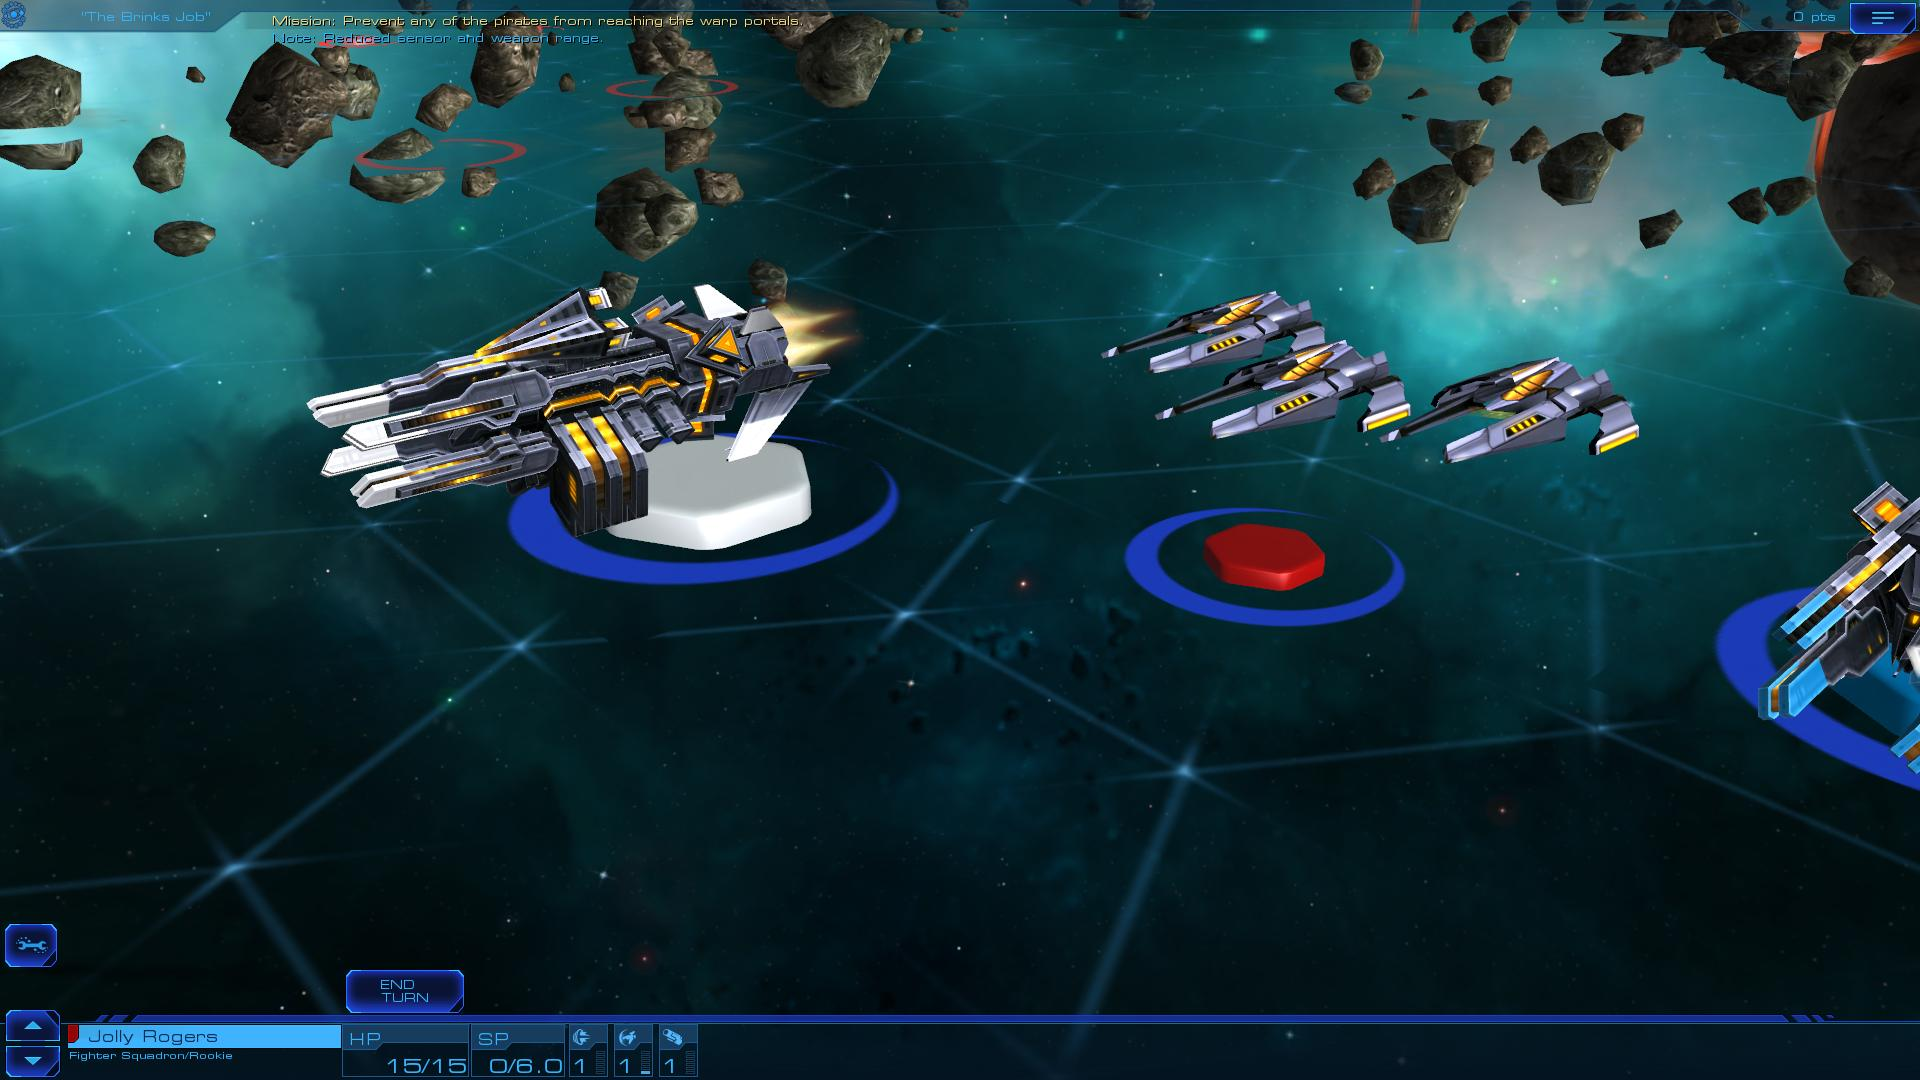 We engage with Sid Meier's Starships (correction)